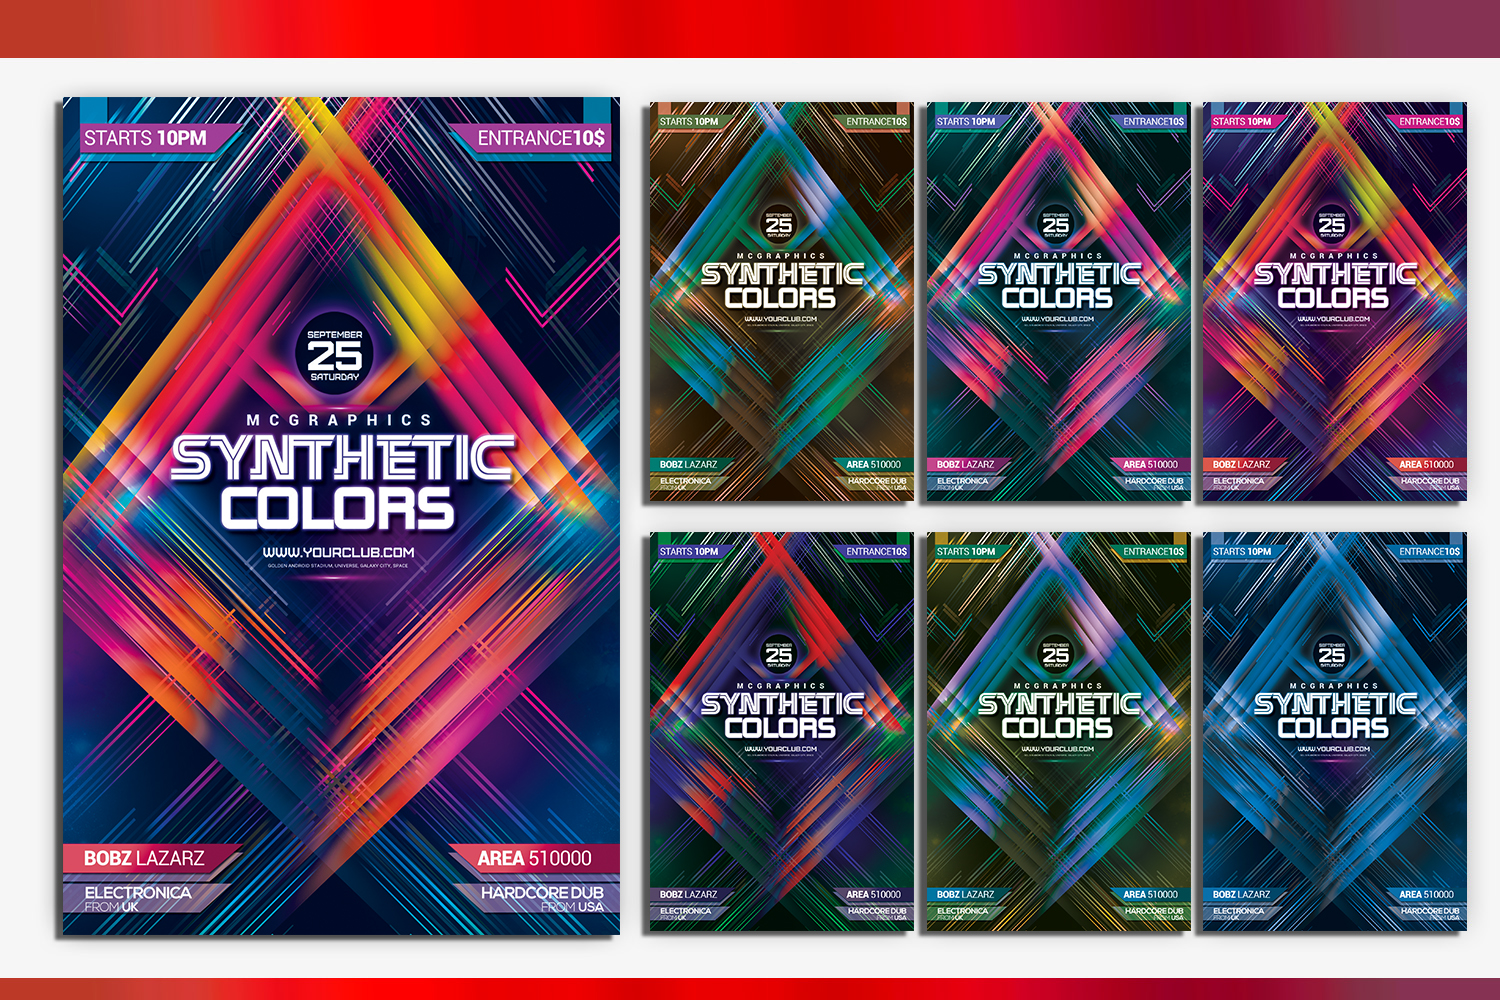 Synthetic Colors Flyer Template example image 1